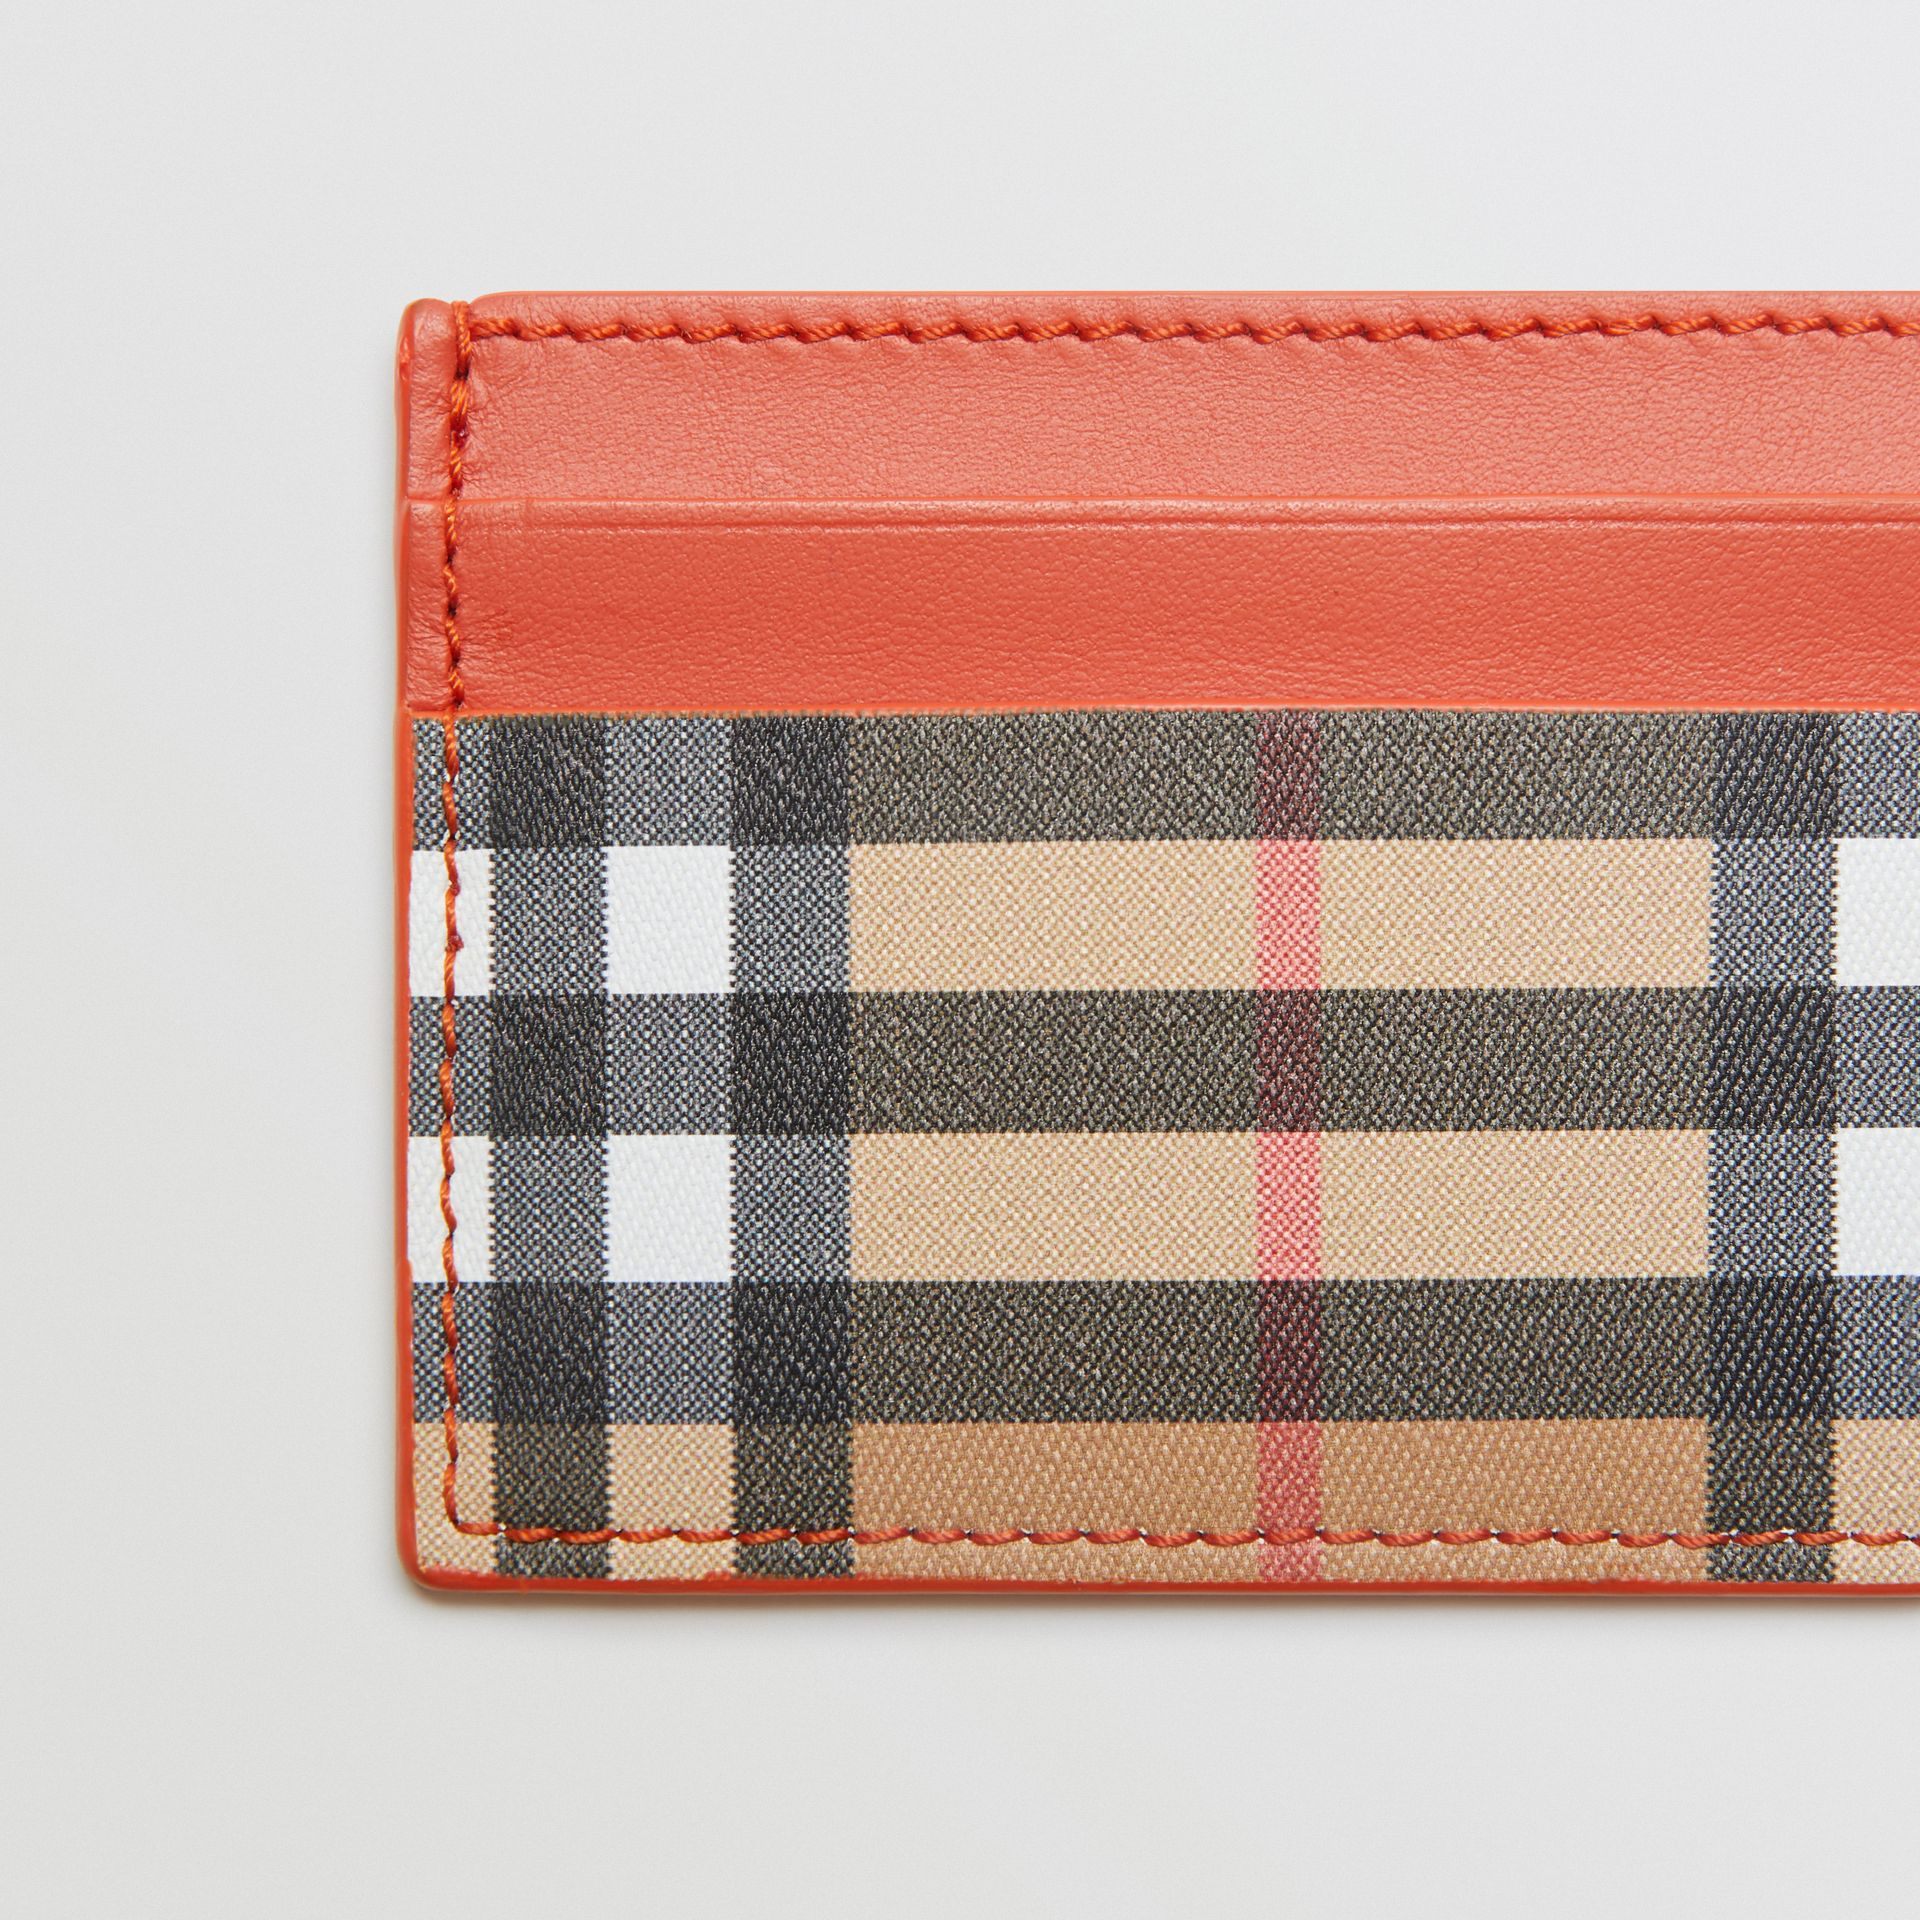 Vintage Check and Leather Card Case in Clementine - Women | Burberry Canada - gallery image 1